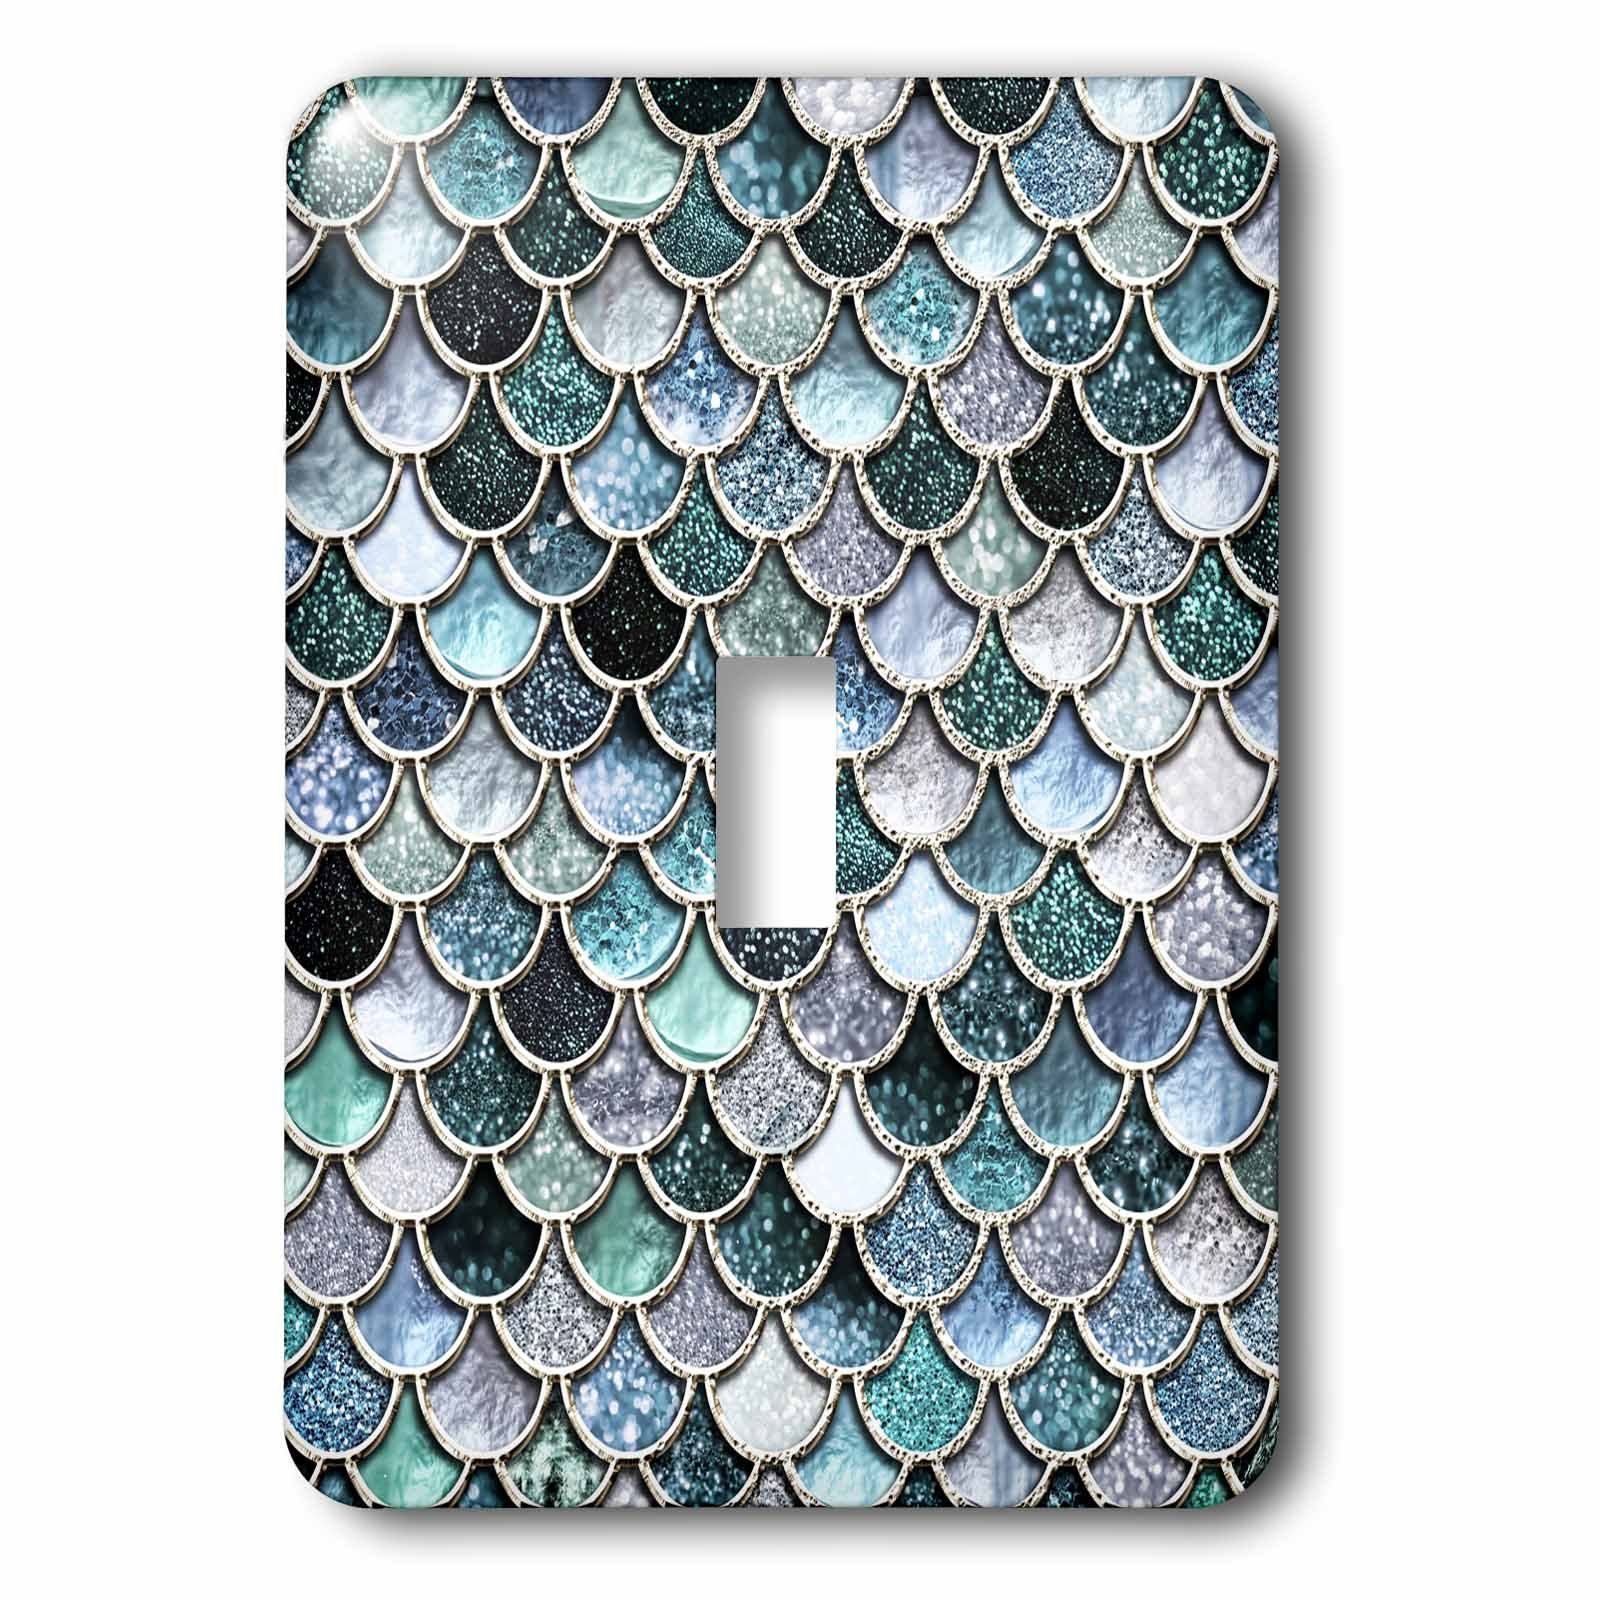 3dRose lsp_272863_1 Multicolor Girly Blue Luxury Elegant Mermaid Scales Glitter Toggle Switch, Mixed by 3dRose (Image #1)